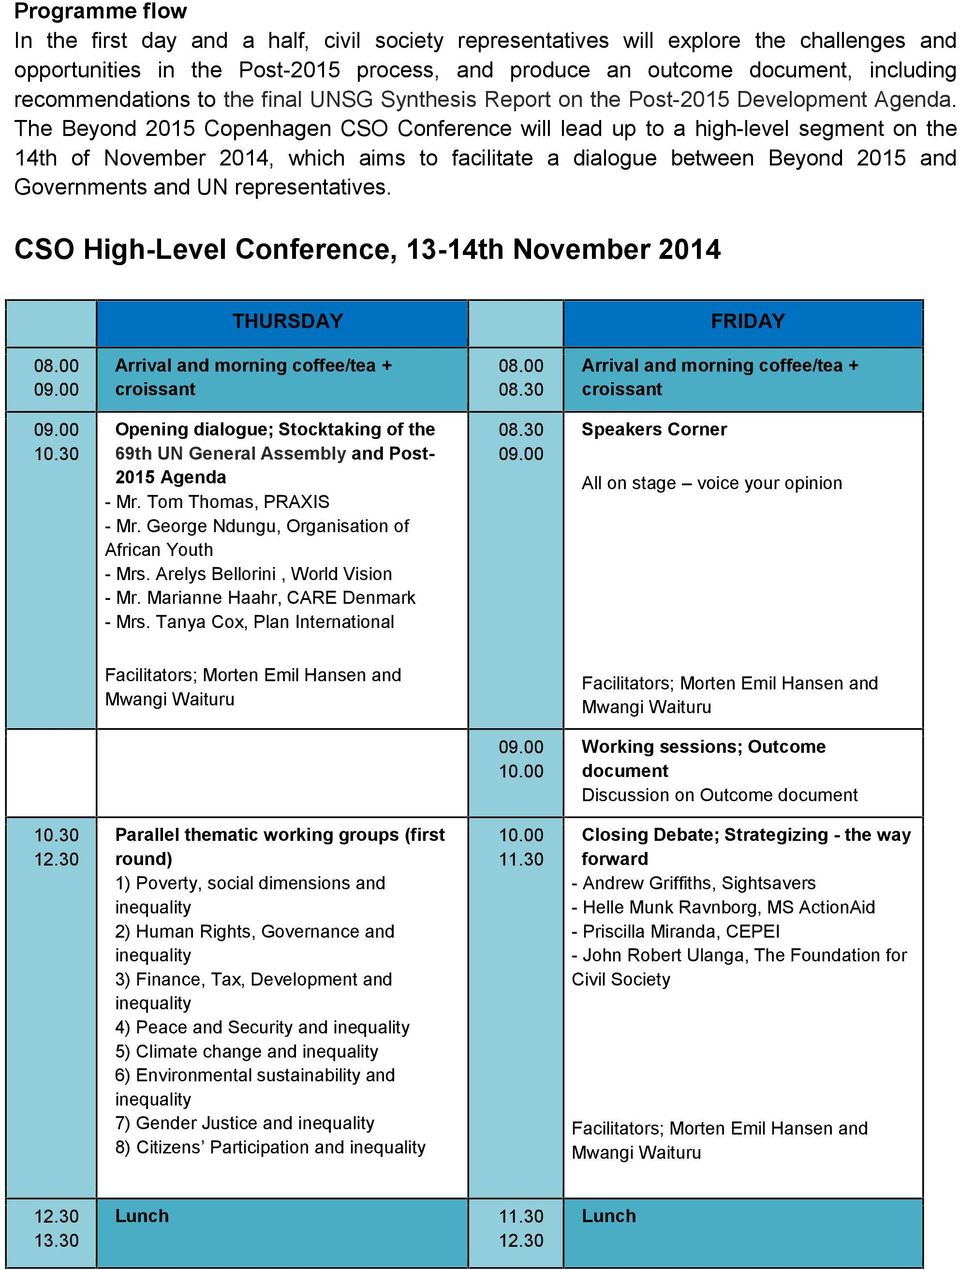 The Beyond 2015 Copenhagen CSO Conference will lead up to a high-level segment on the 14th of November 2014, which aims to facilitate a dialogue between Beyond 2015 and Governments and UN